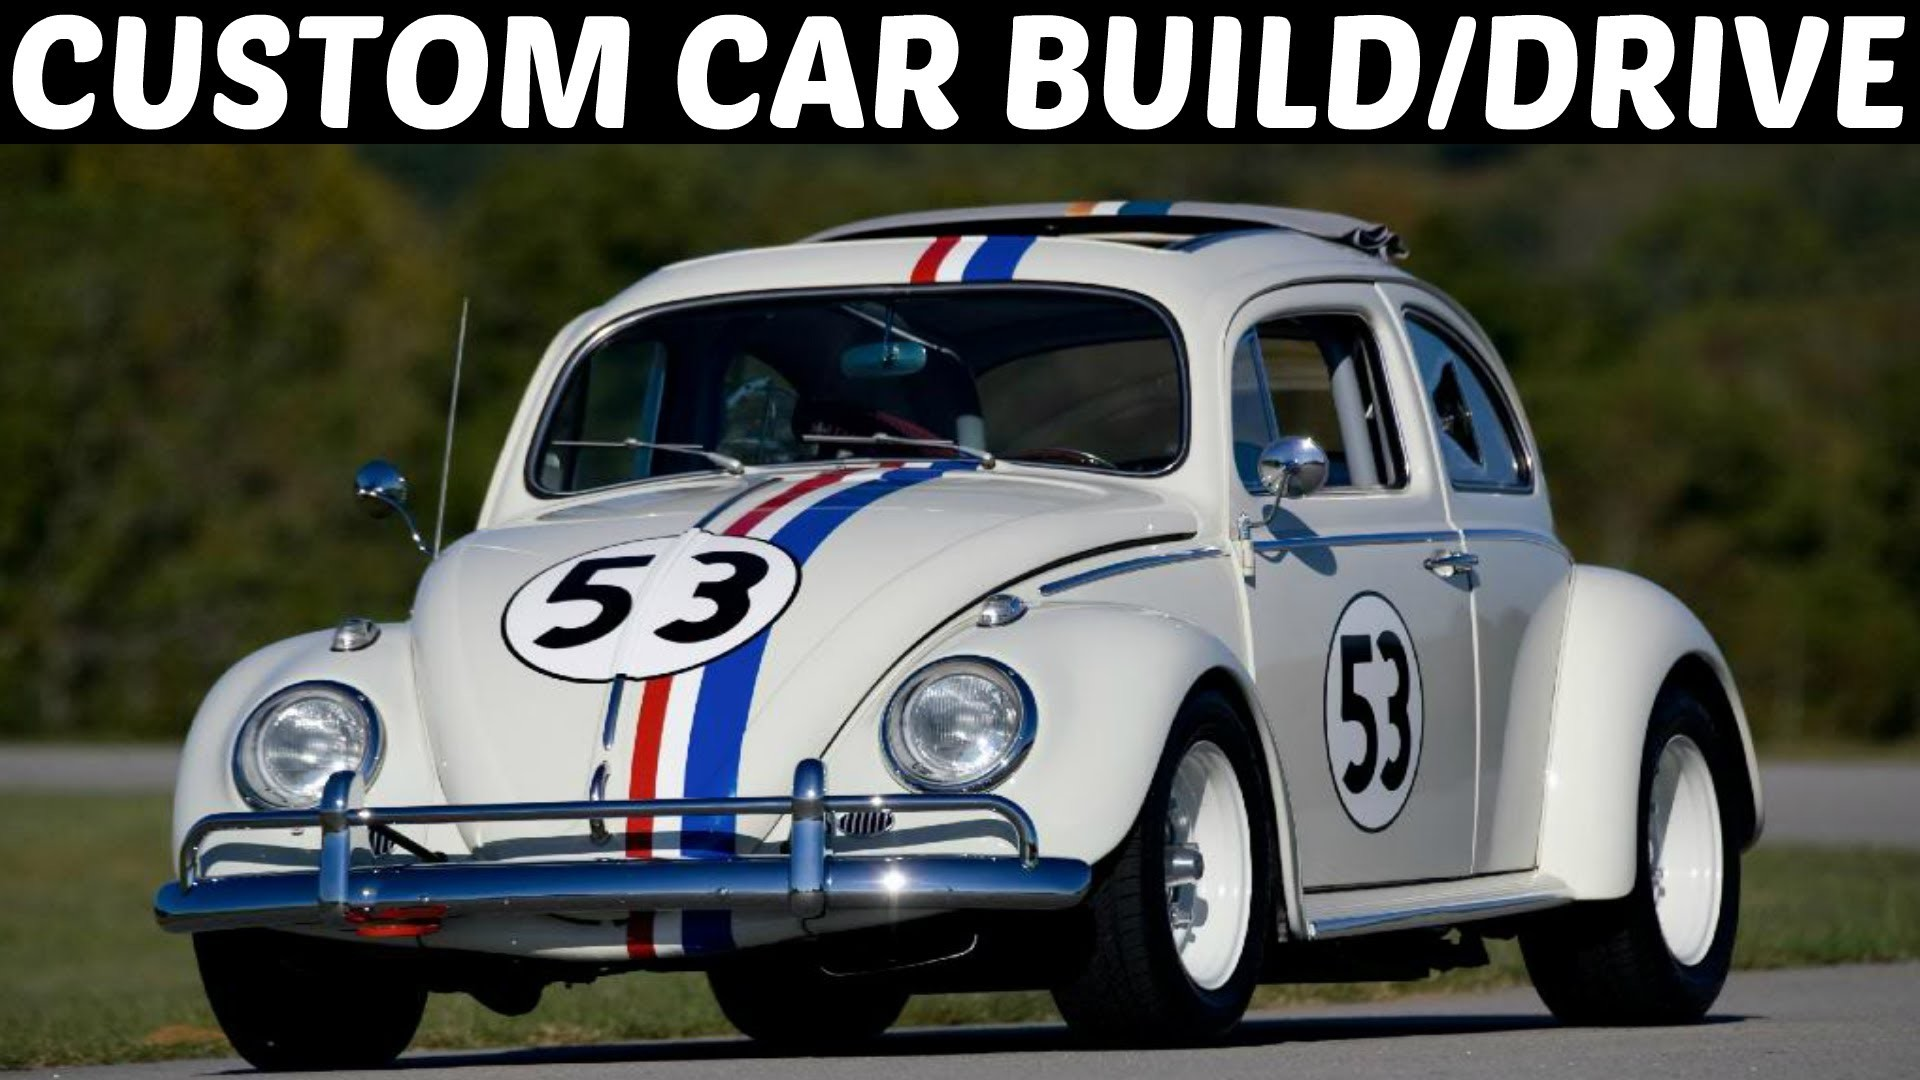 Res: 1920x1080, Forza 5 Custom Car Build/Drive - #4 V8 VW BEETLE (Herbie Goes Bannanas)  !!!! - YouTube